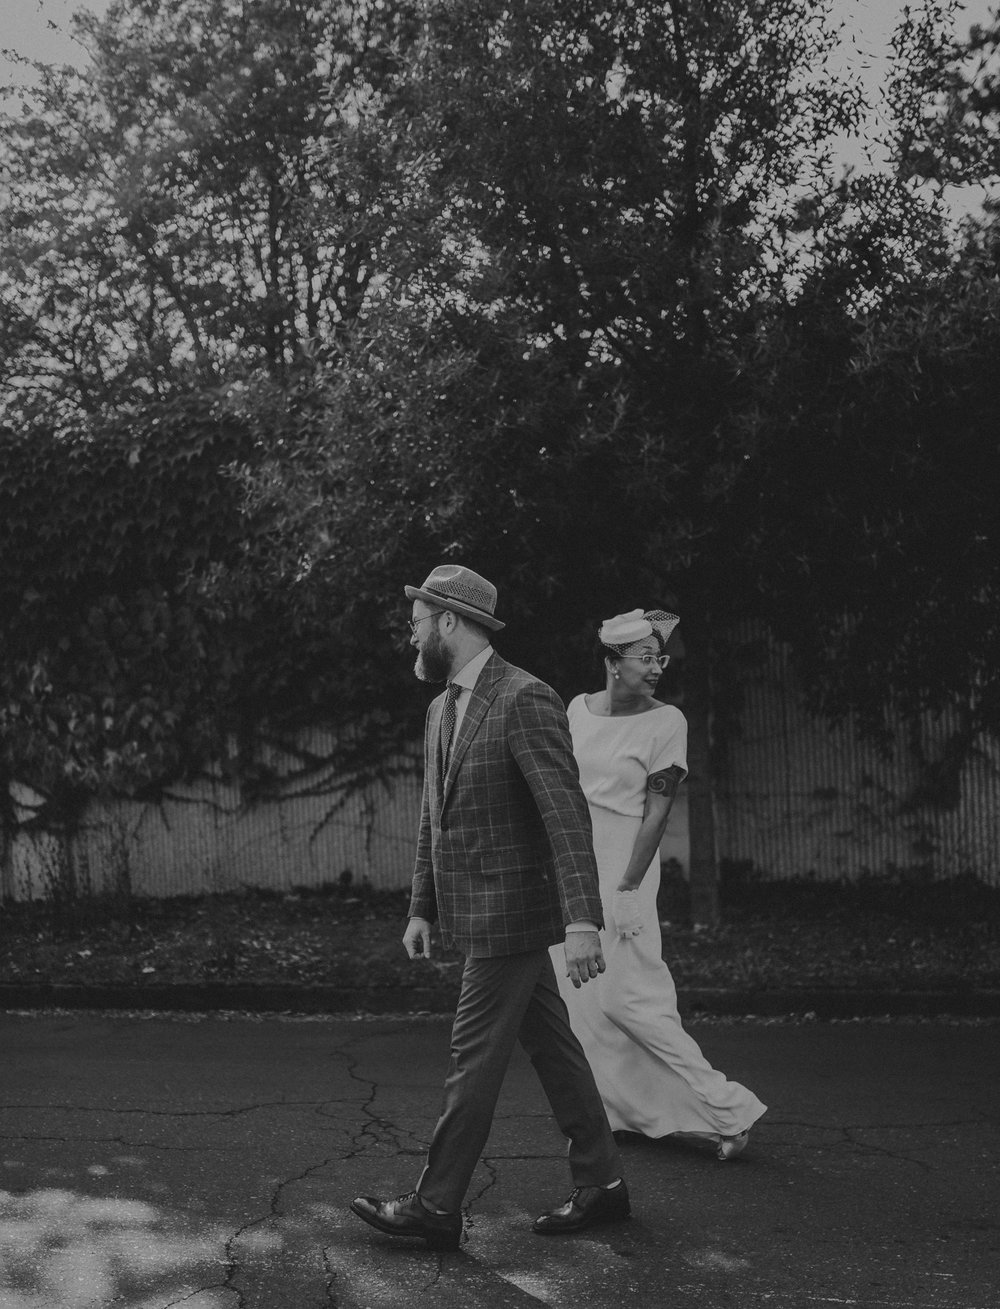 Los Angeles Wedding Photographer - Portland Elopement Photographer - IsaiahAndTaylor.com-073.jpg